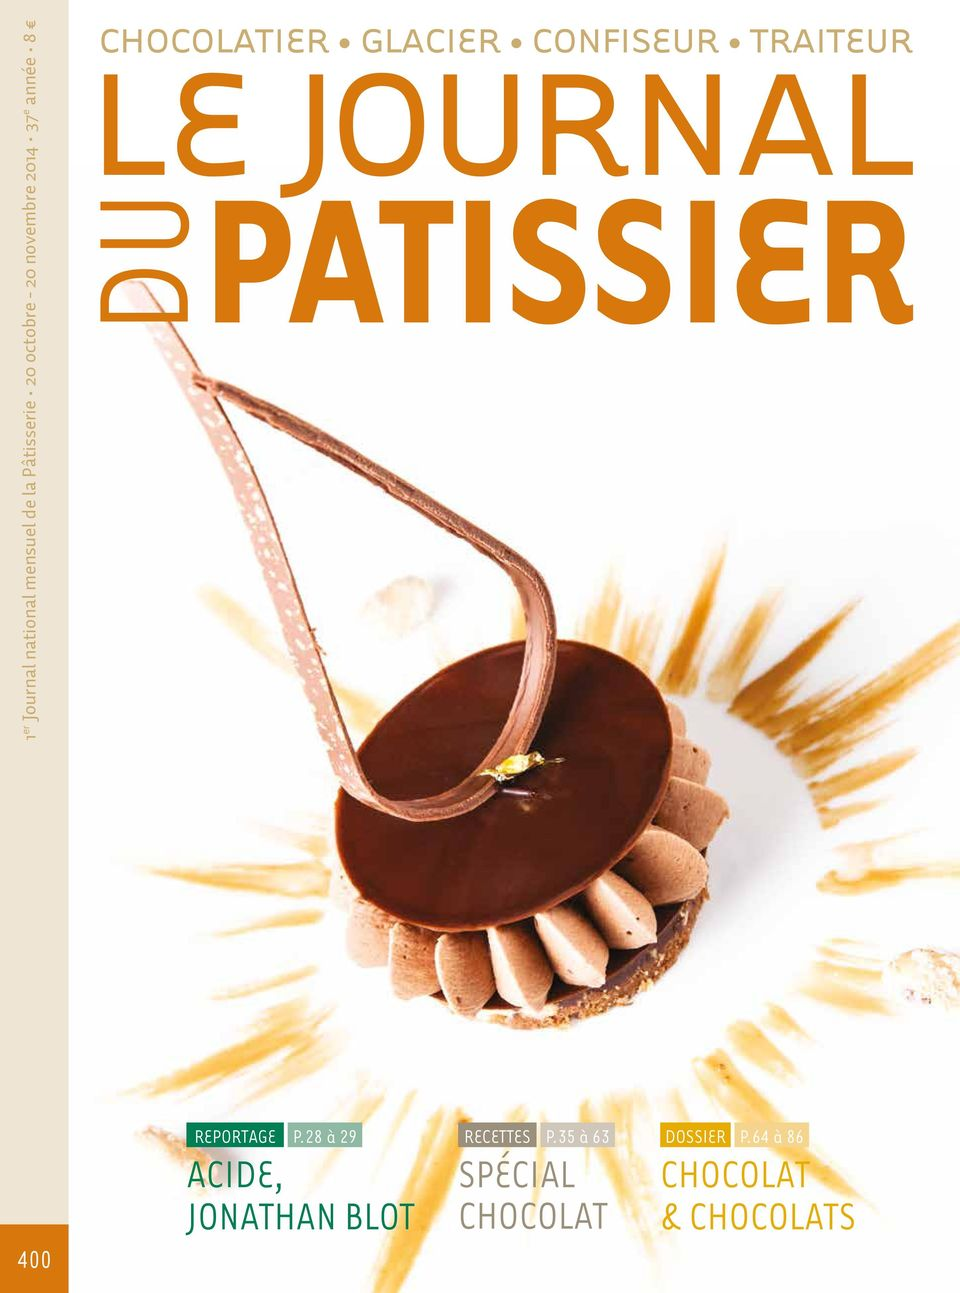 LE JOURNAL PATISSIER DU 400 REPORTAGE ACIDE, P.